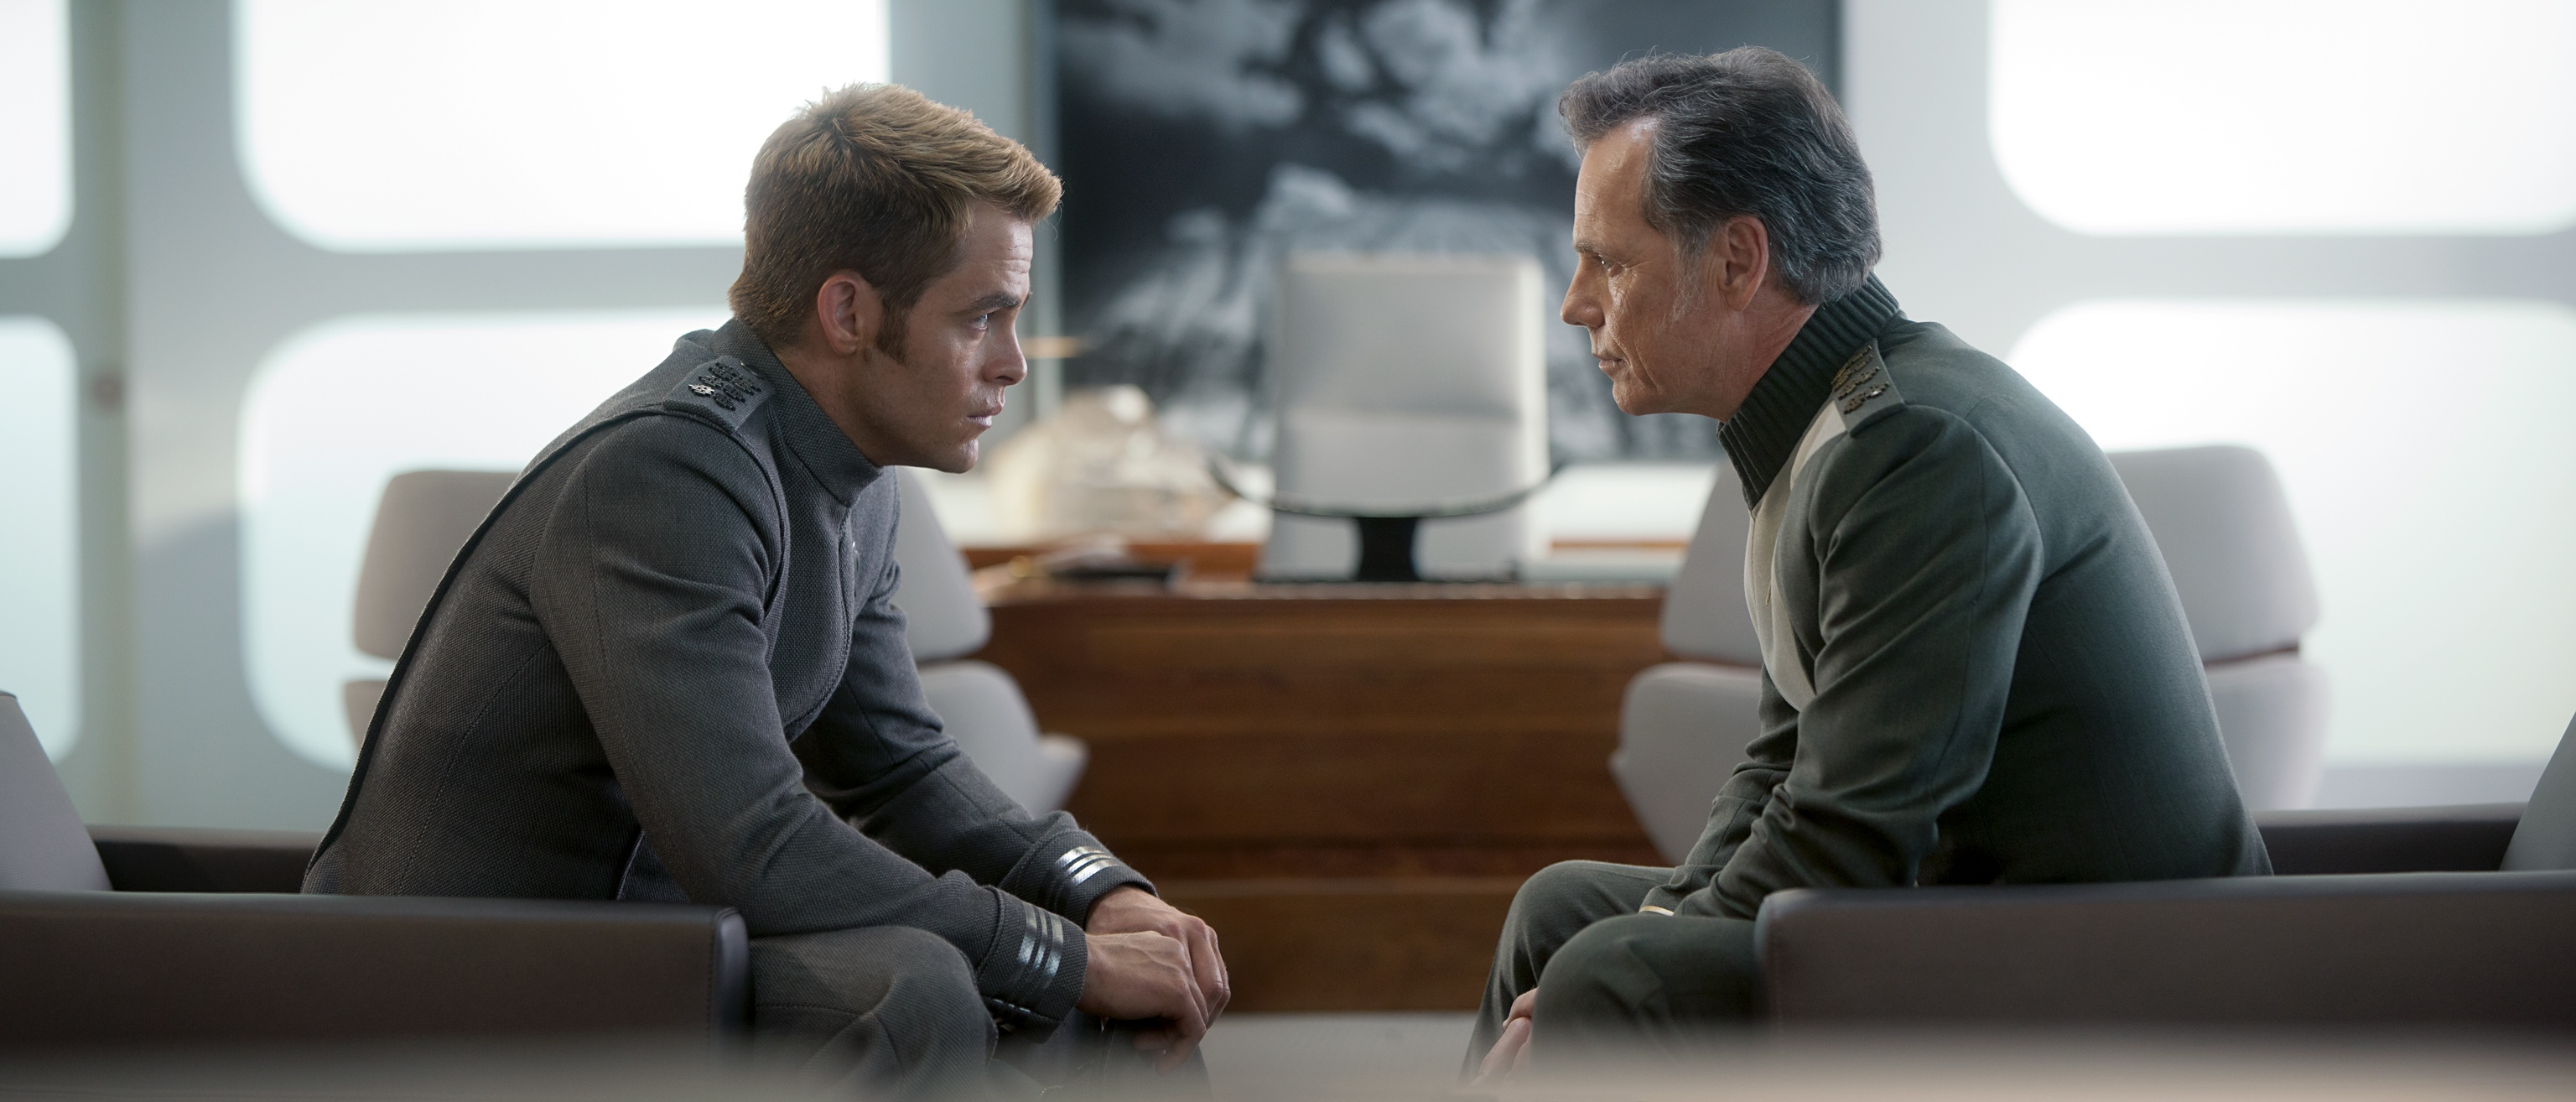 Star Trek Into Darkness Preview - Kirk und Pine